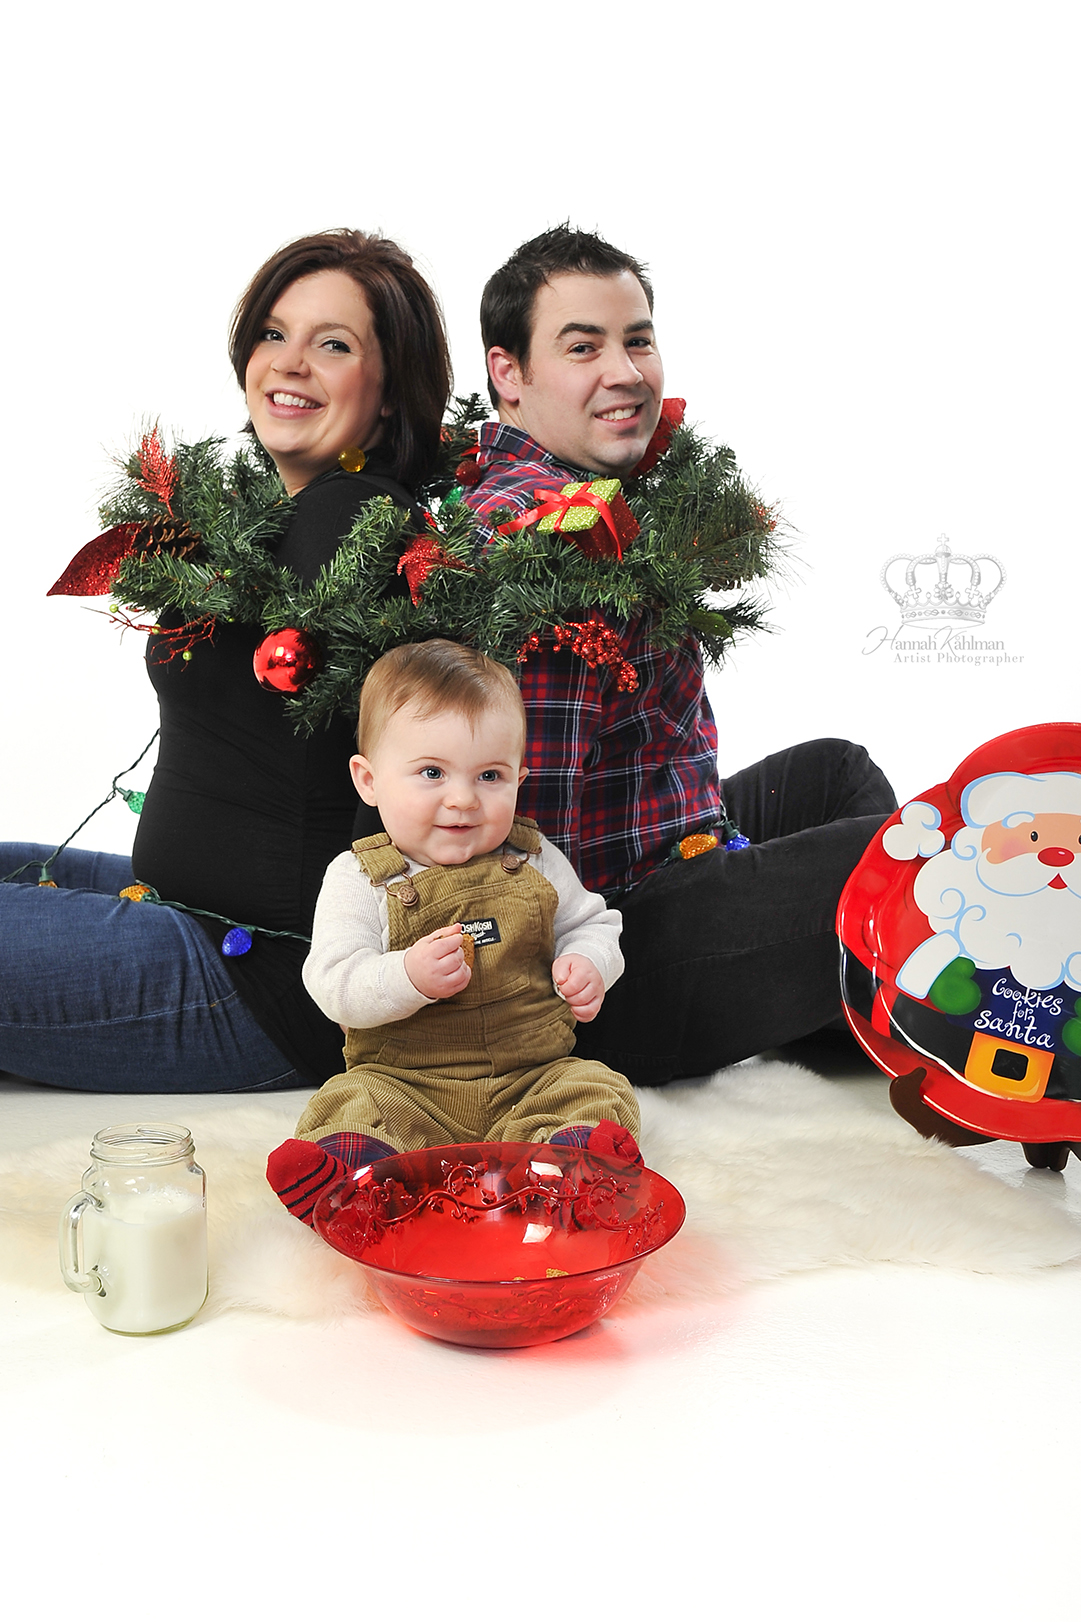 Fun_creative_Christmas_photo_in_studio_f